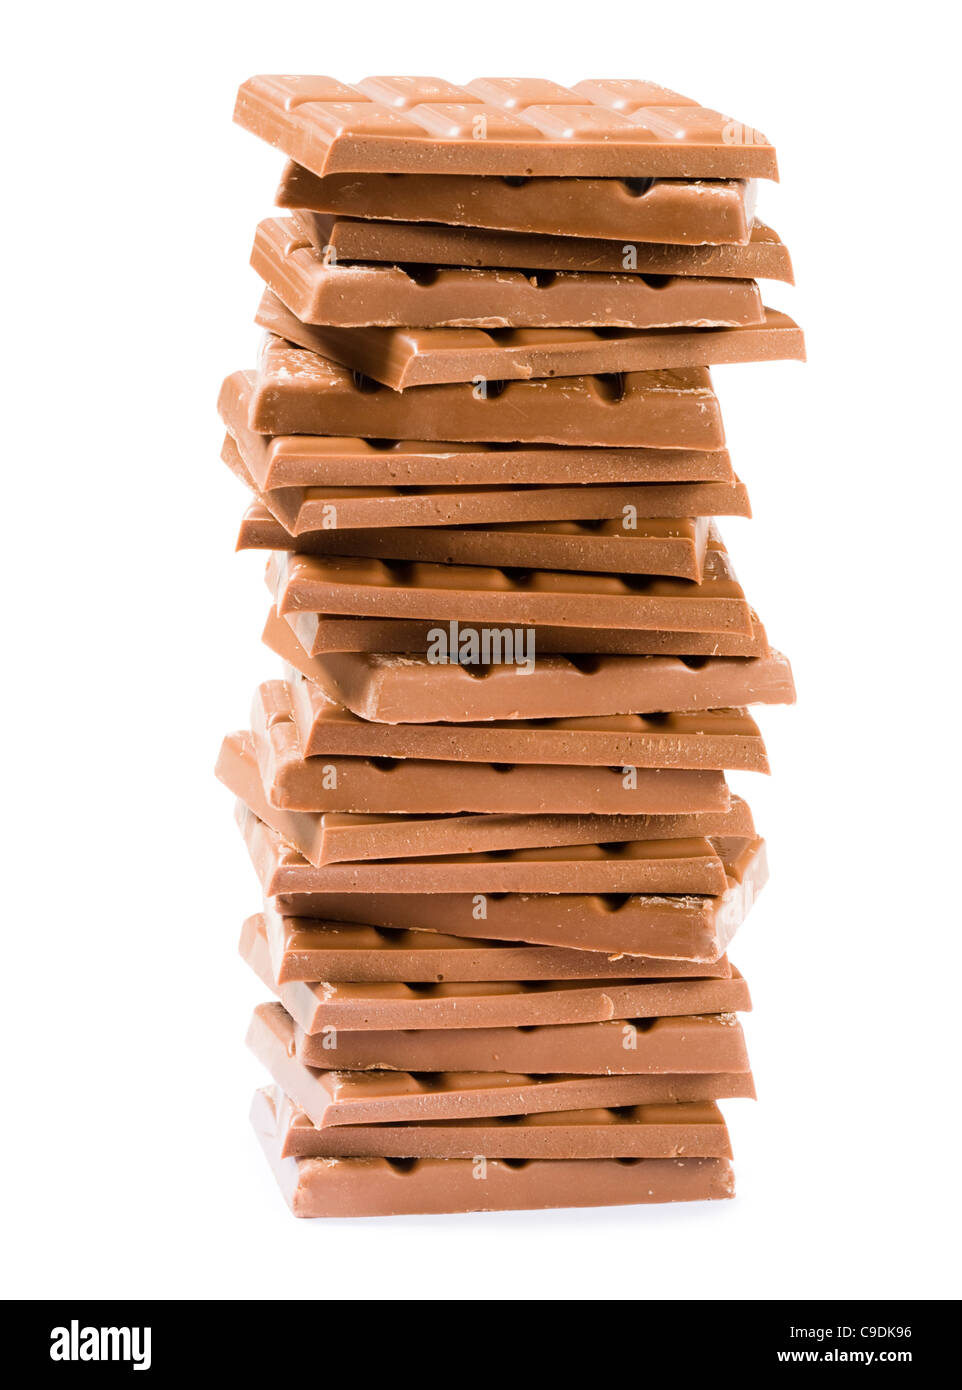 Stack of chocolate. - Stock Image